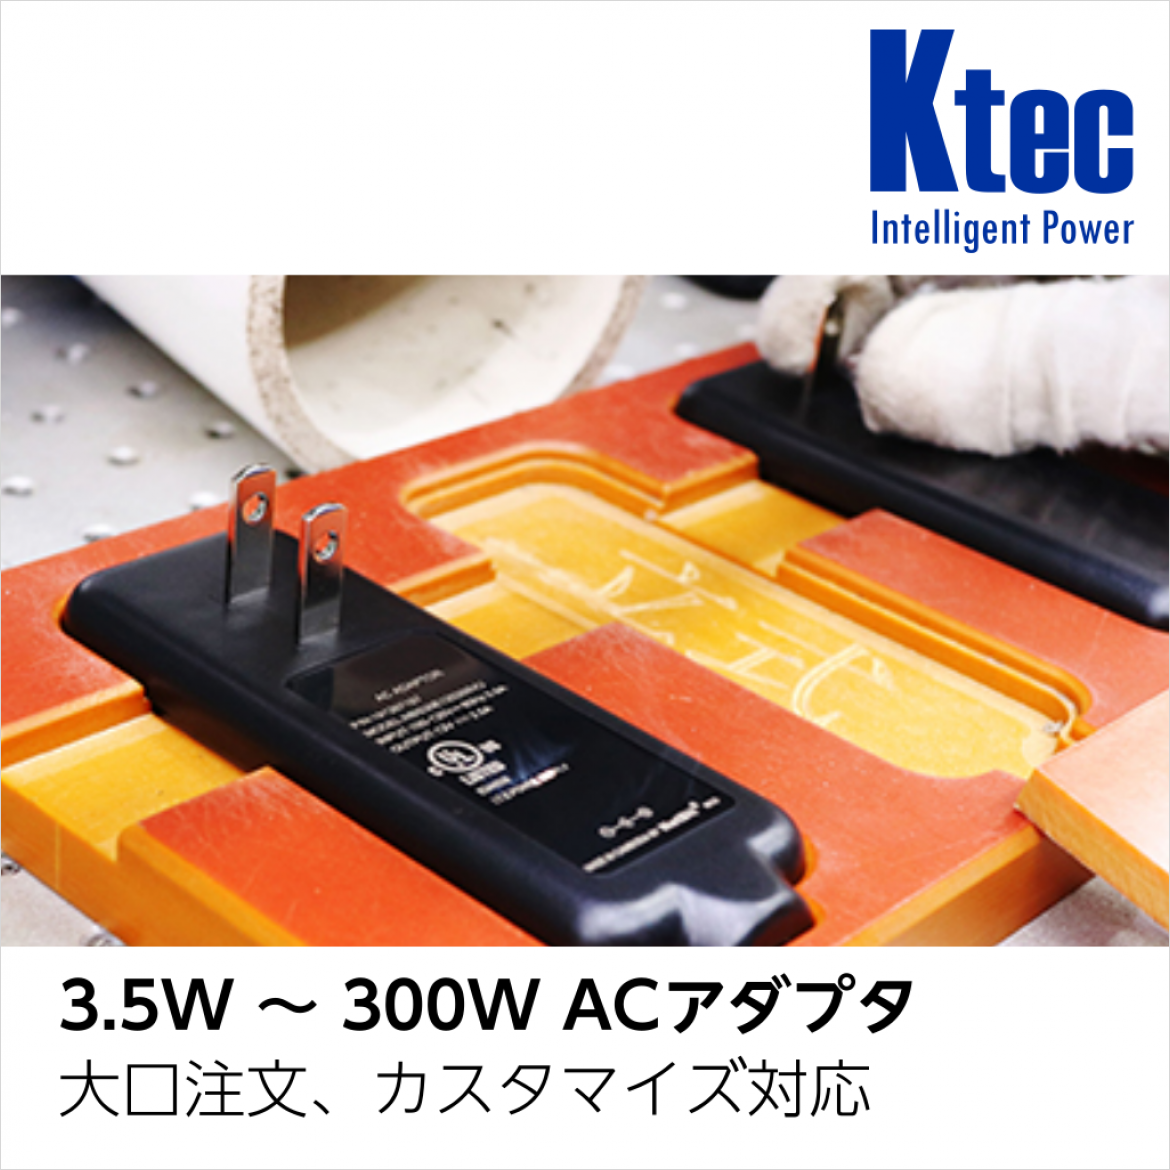 Kuantech Intelligent Power AC アダプタラインップ